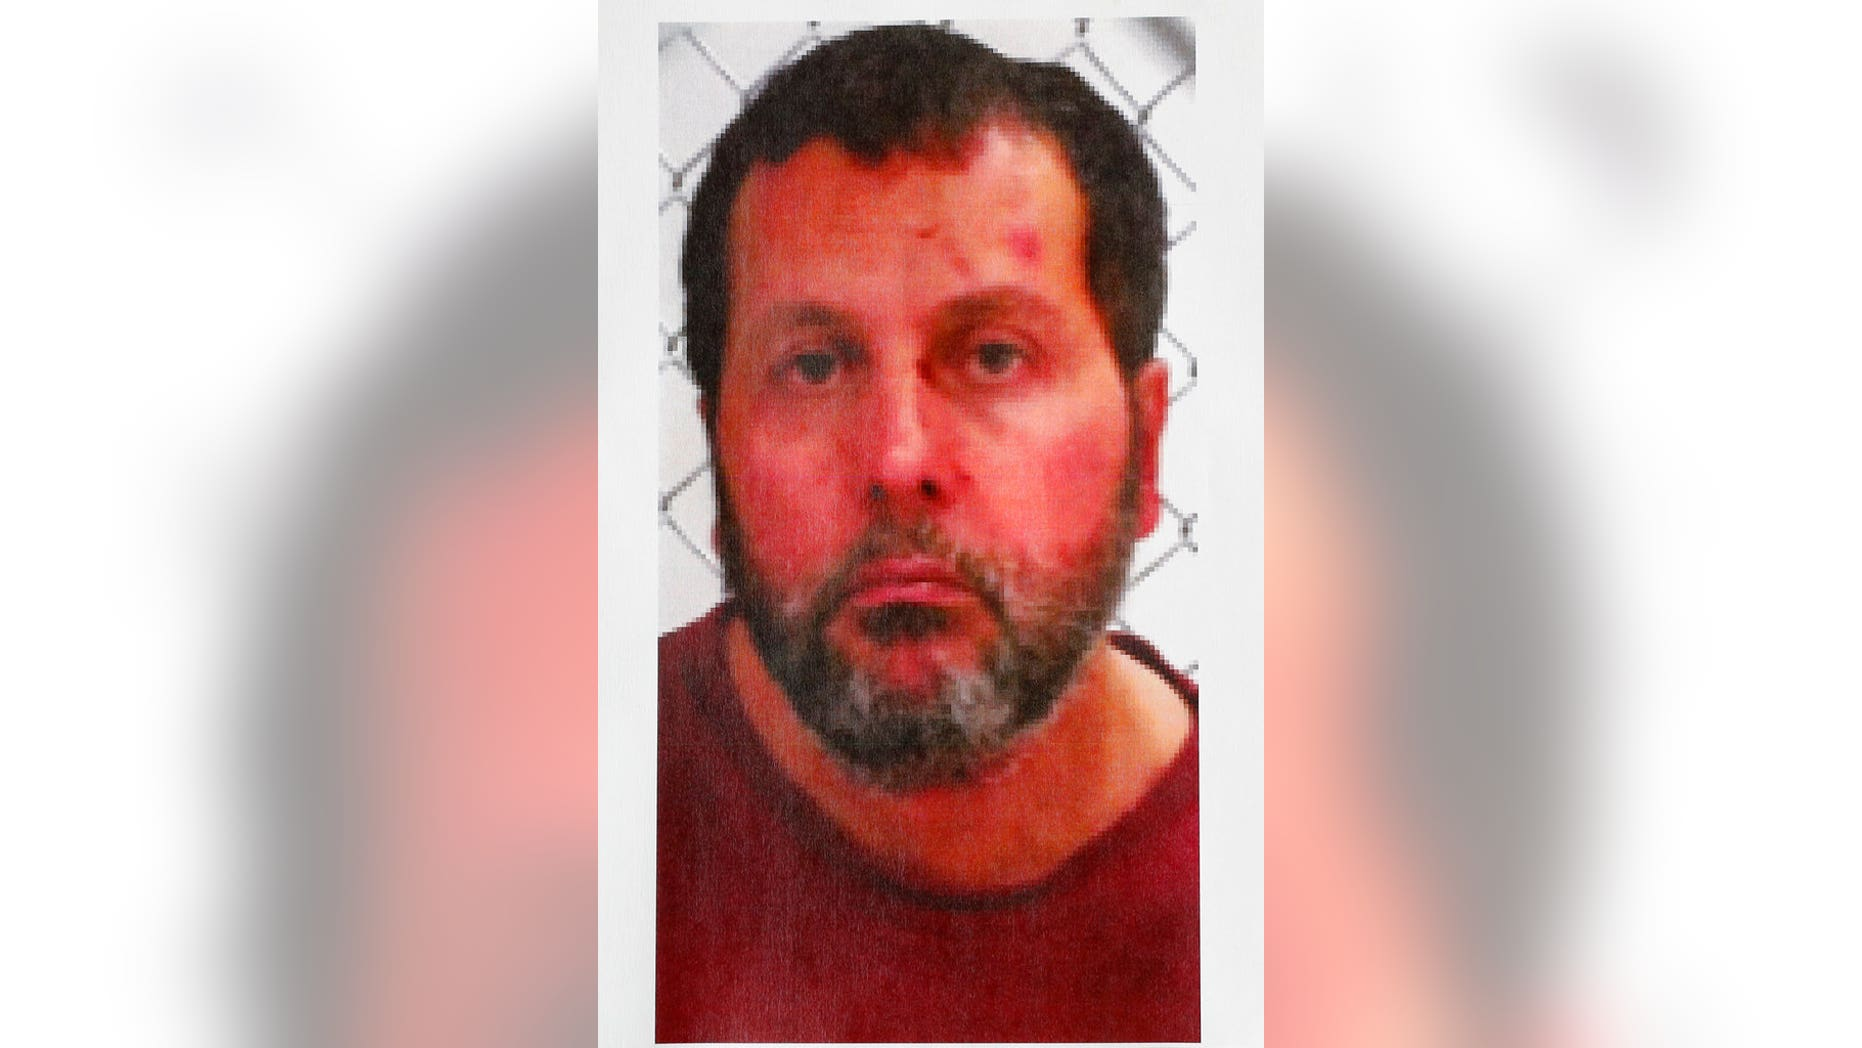 In this undated photo released by the FBI, Amor Ftouhi is shown. Ftouhi, a Canadian man, shouted in Arabic before stabbing a police officer in the neck at the Bishop International Airport in Flint, Mich., on Wednesday. The FBI says Ftouhi, 49, tried unsuccessfully to buy a gun while in the United States for five days. (AP Photo/Paul Sancya)